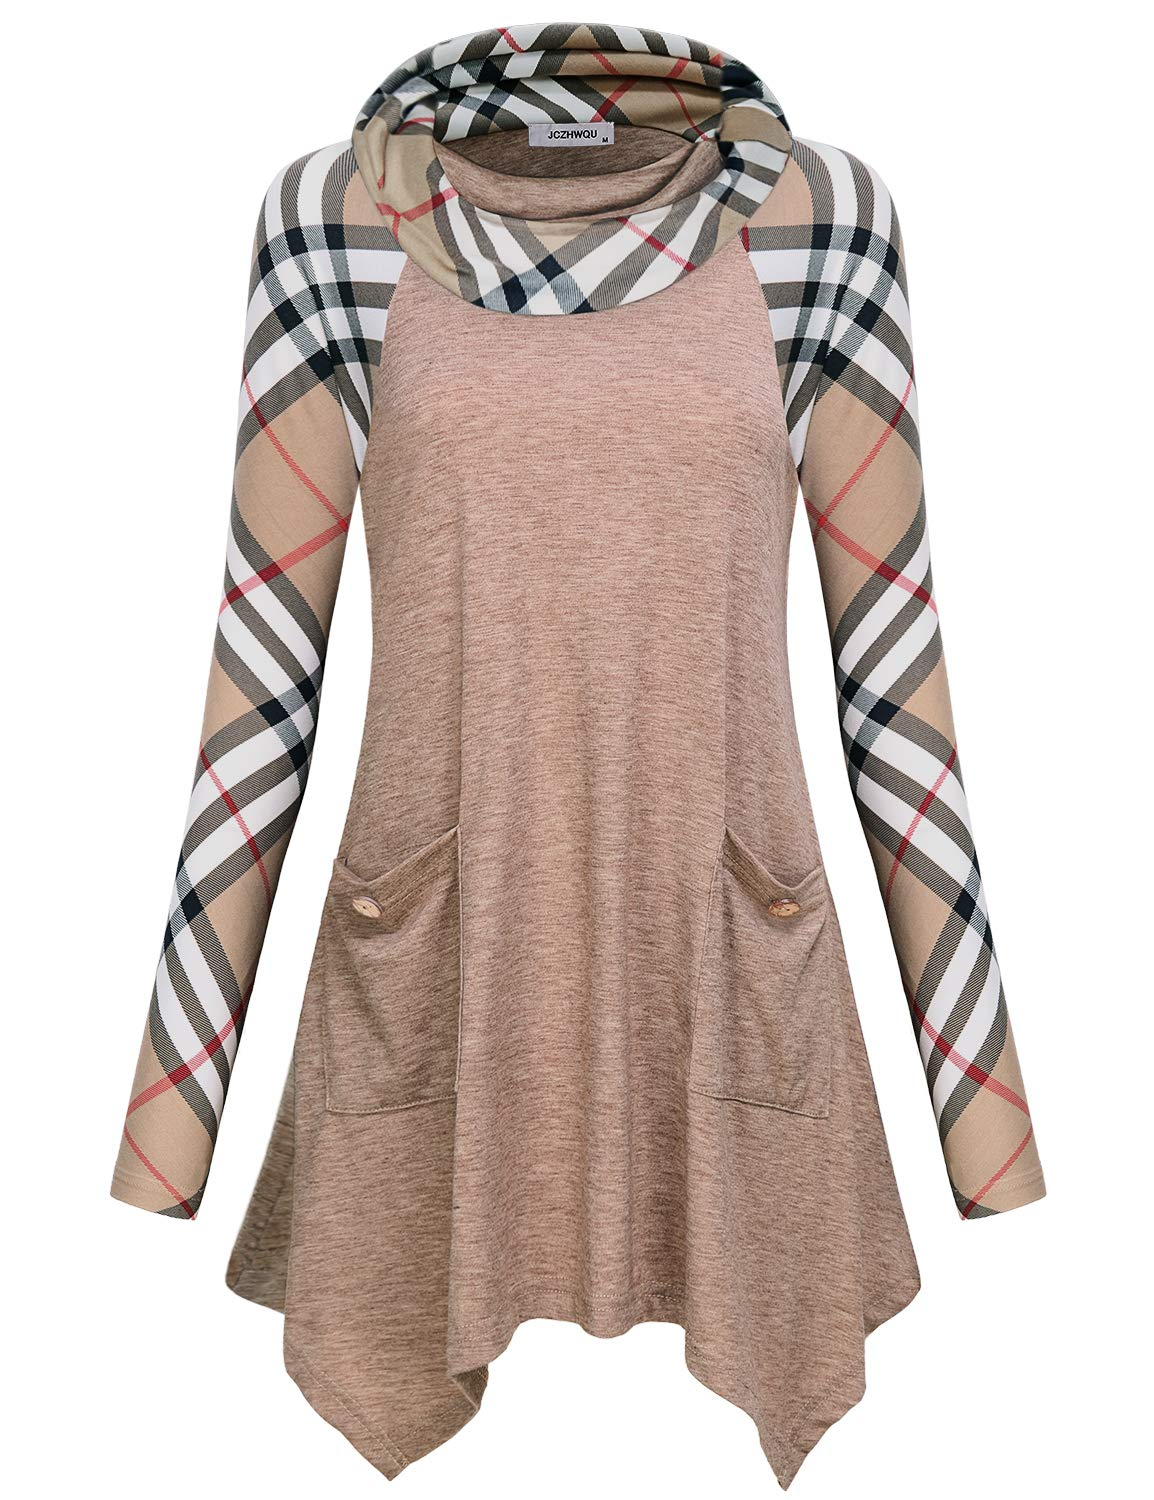 Tunic Tops for Leggings for Women , Misses Vintage Plaid Print Cowl Neck Youth Shirts and Blouses Flattering Fashion Long Sleeve Flows Handkerchief Hem Sweatshirt Christmas Clothing Gift Beige XL